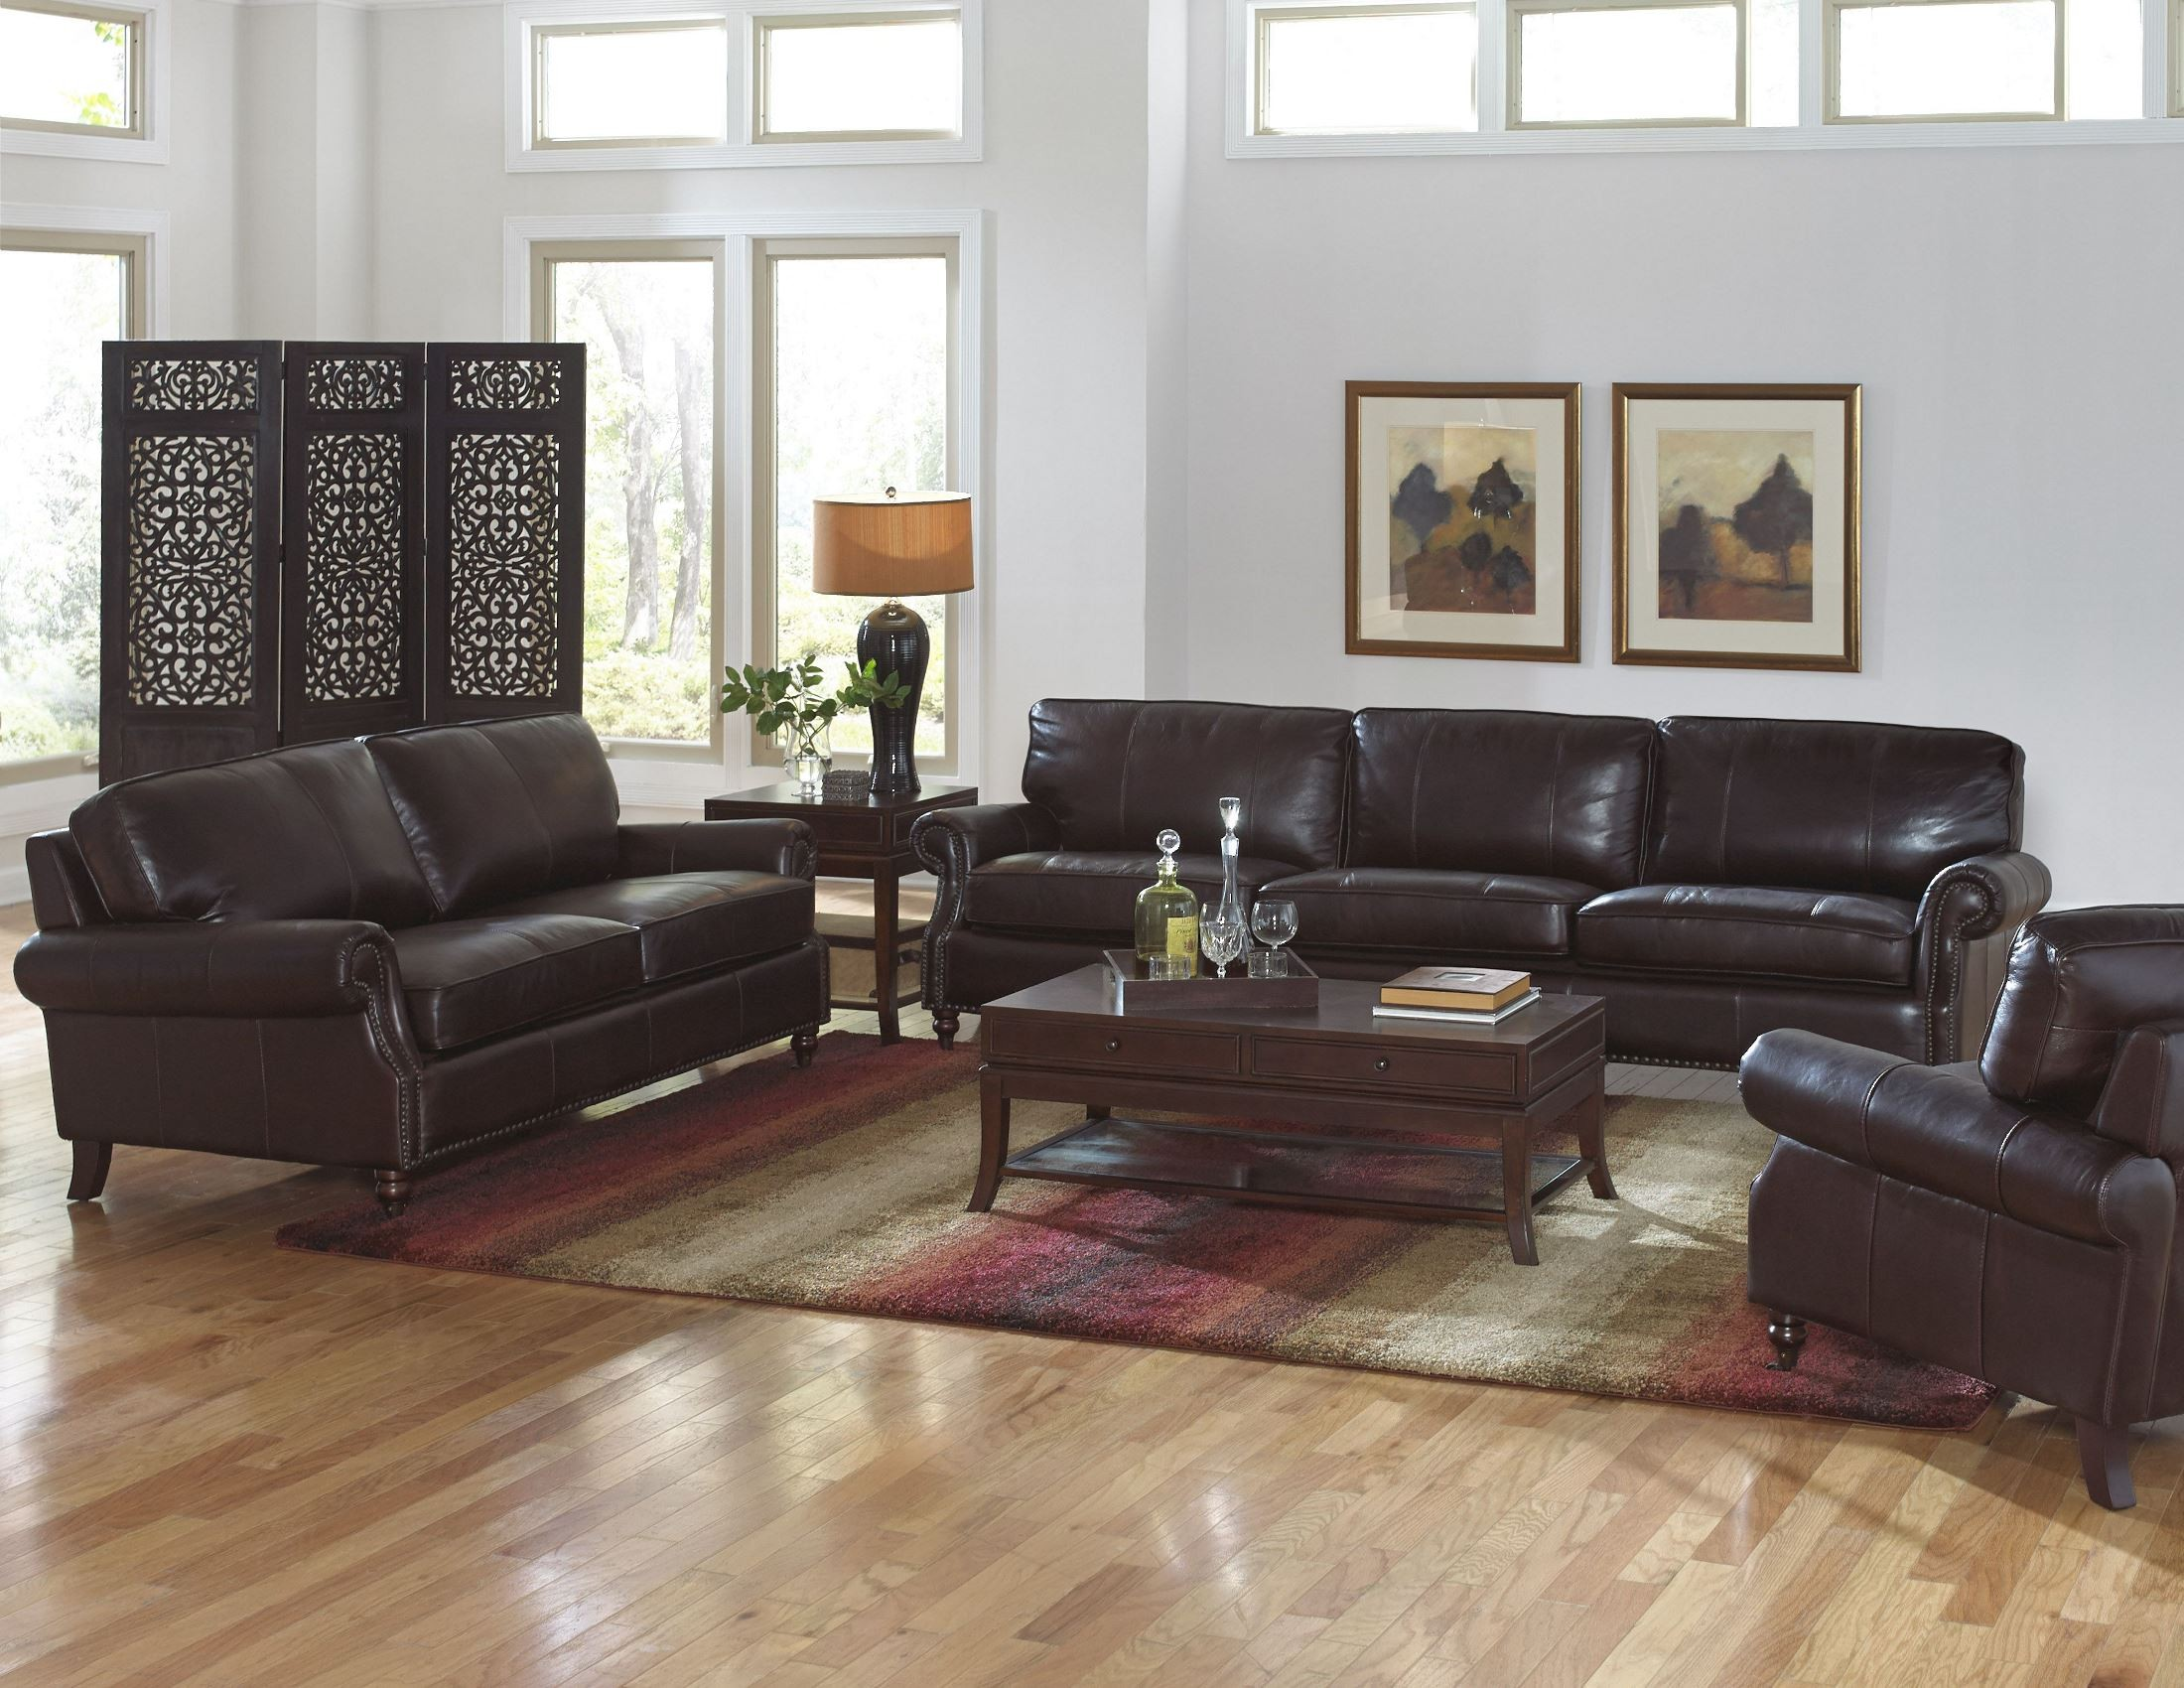 Stockton Dark Chocolate Leather Four Seat Sofa From Lazzaro Wh 1120 40 9012g Coleman Furniture